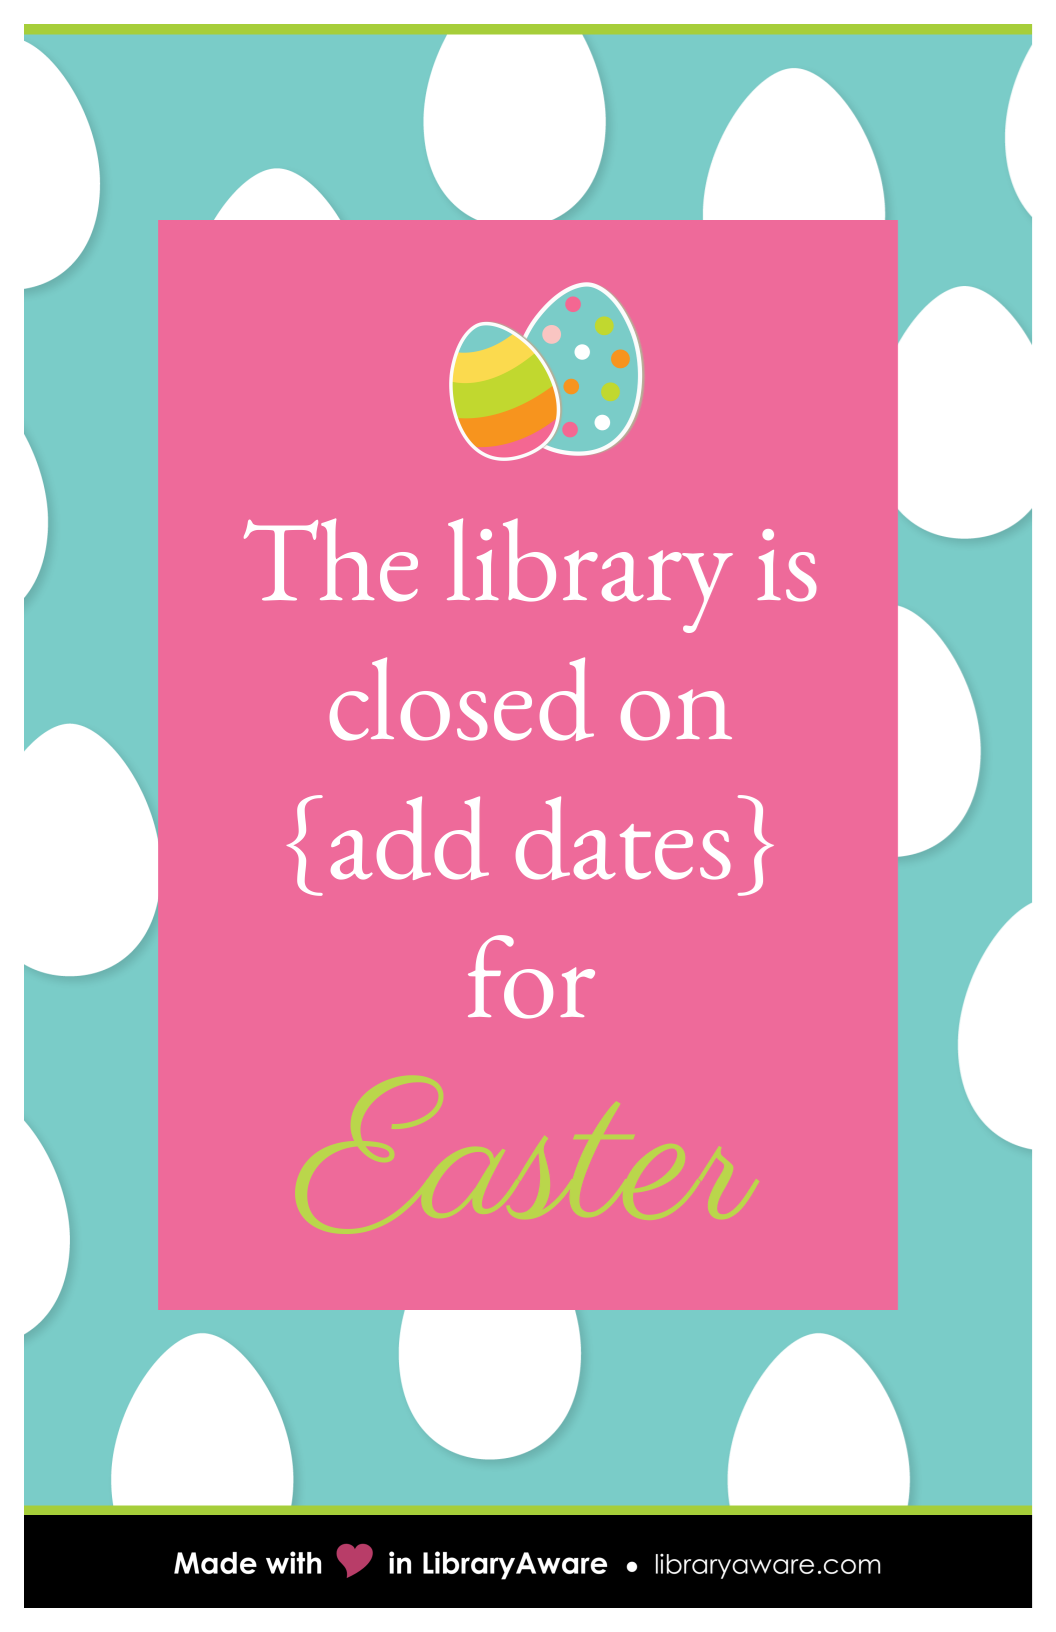 Need A Quick Sign To Let Your Library Patrons Know You Are Closed